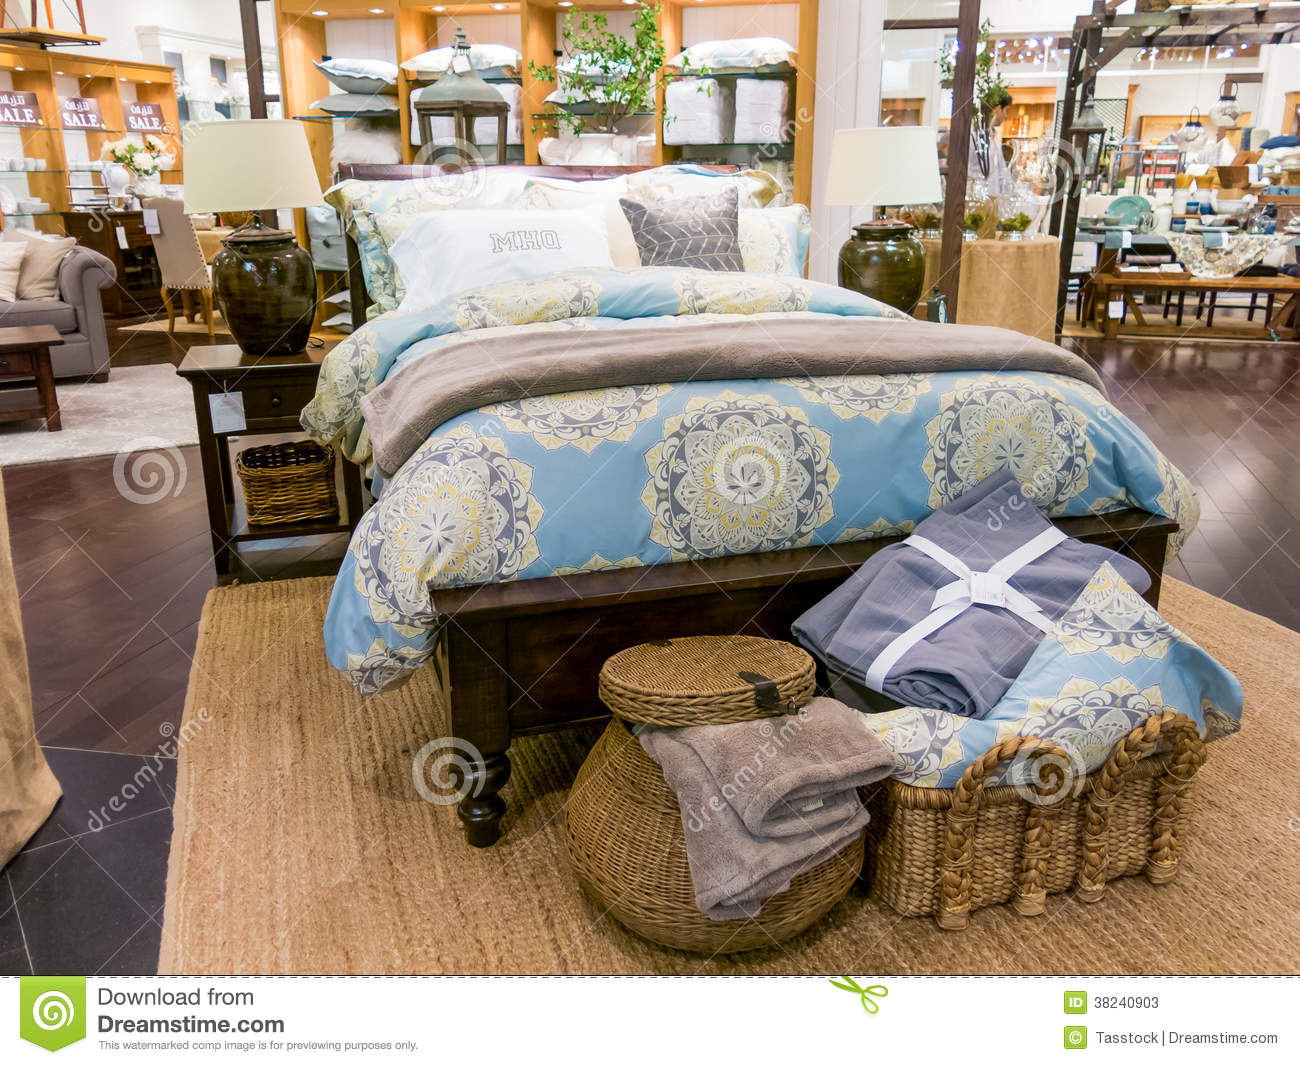 Home decor store in dubai mall editorial stock photo for Home decor uae